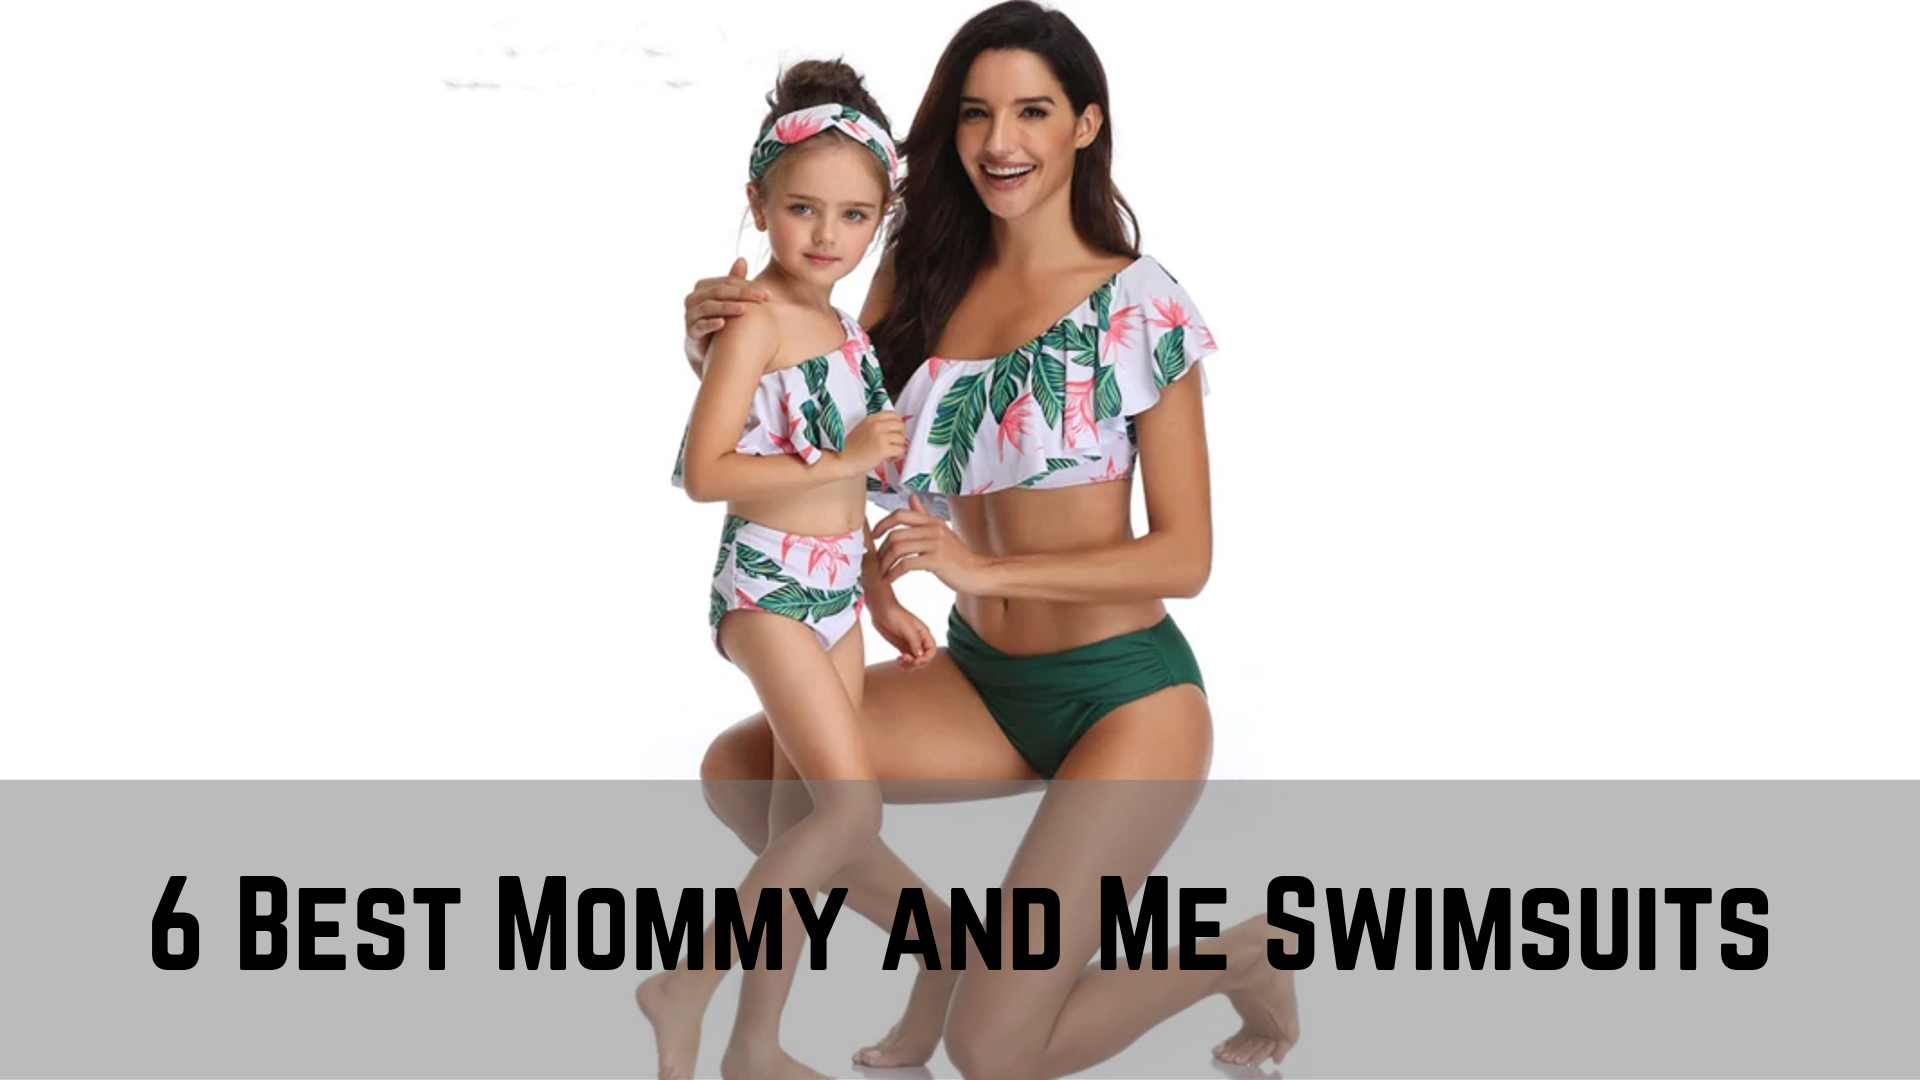 6 Best Mommy and Me Swimsuits